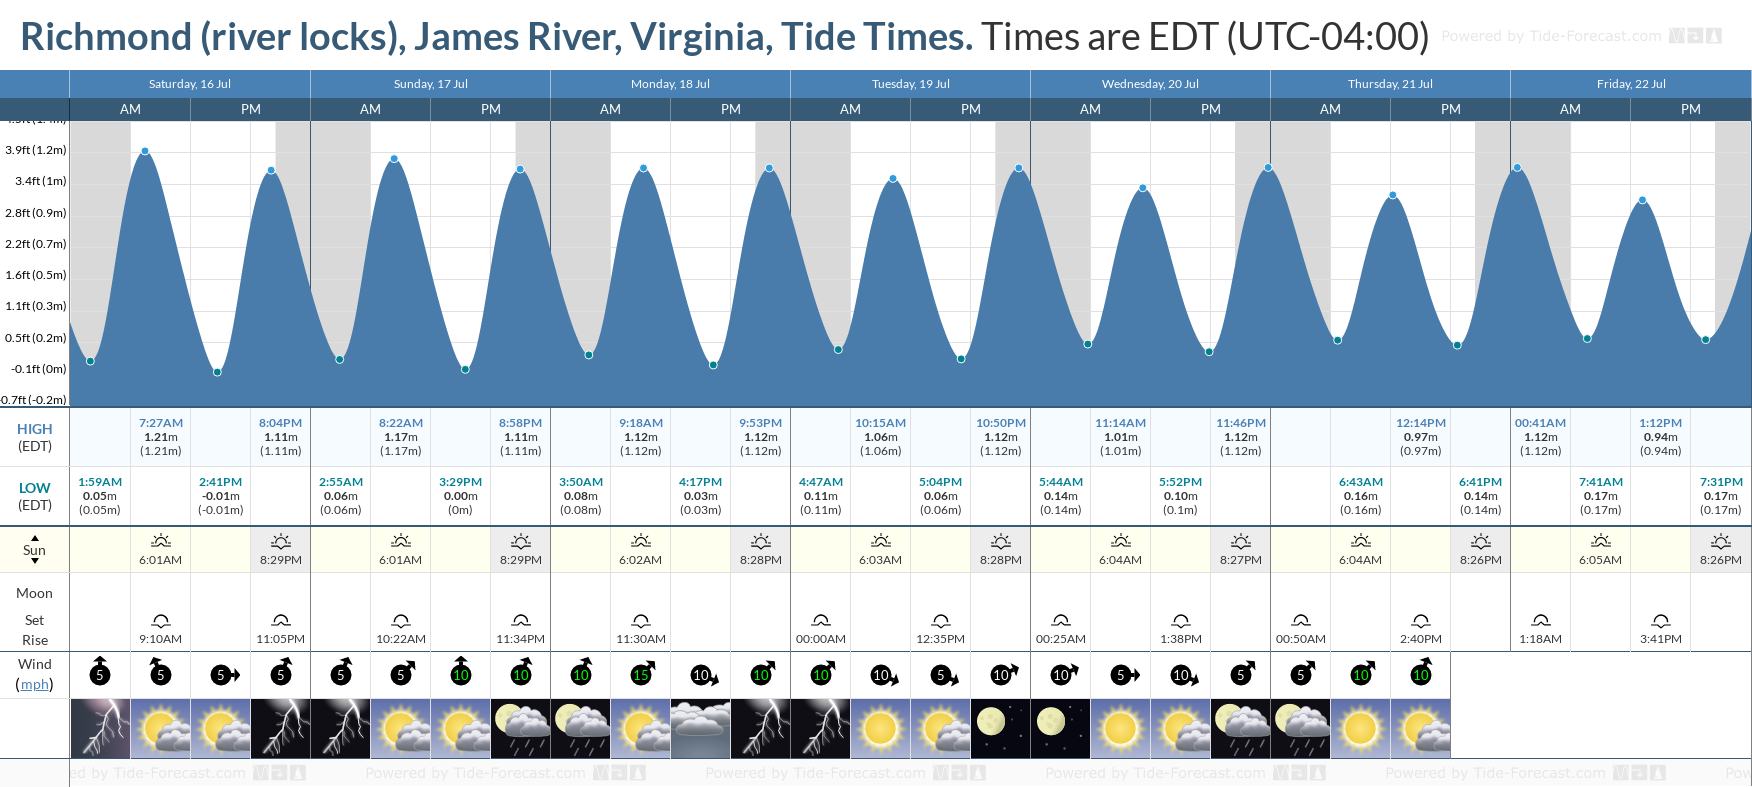 Richmond (river locks), James River, Virginia Tide Chart including high and low tide tide times for the next 7 days